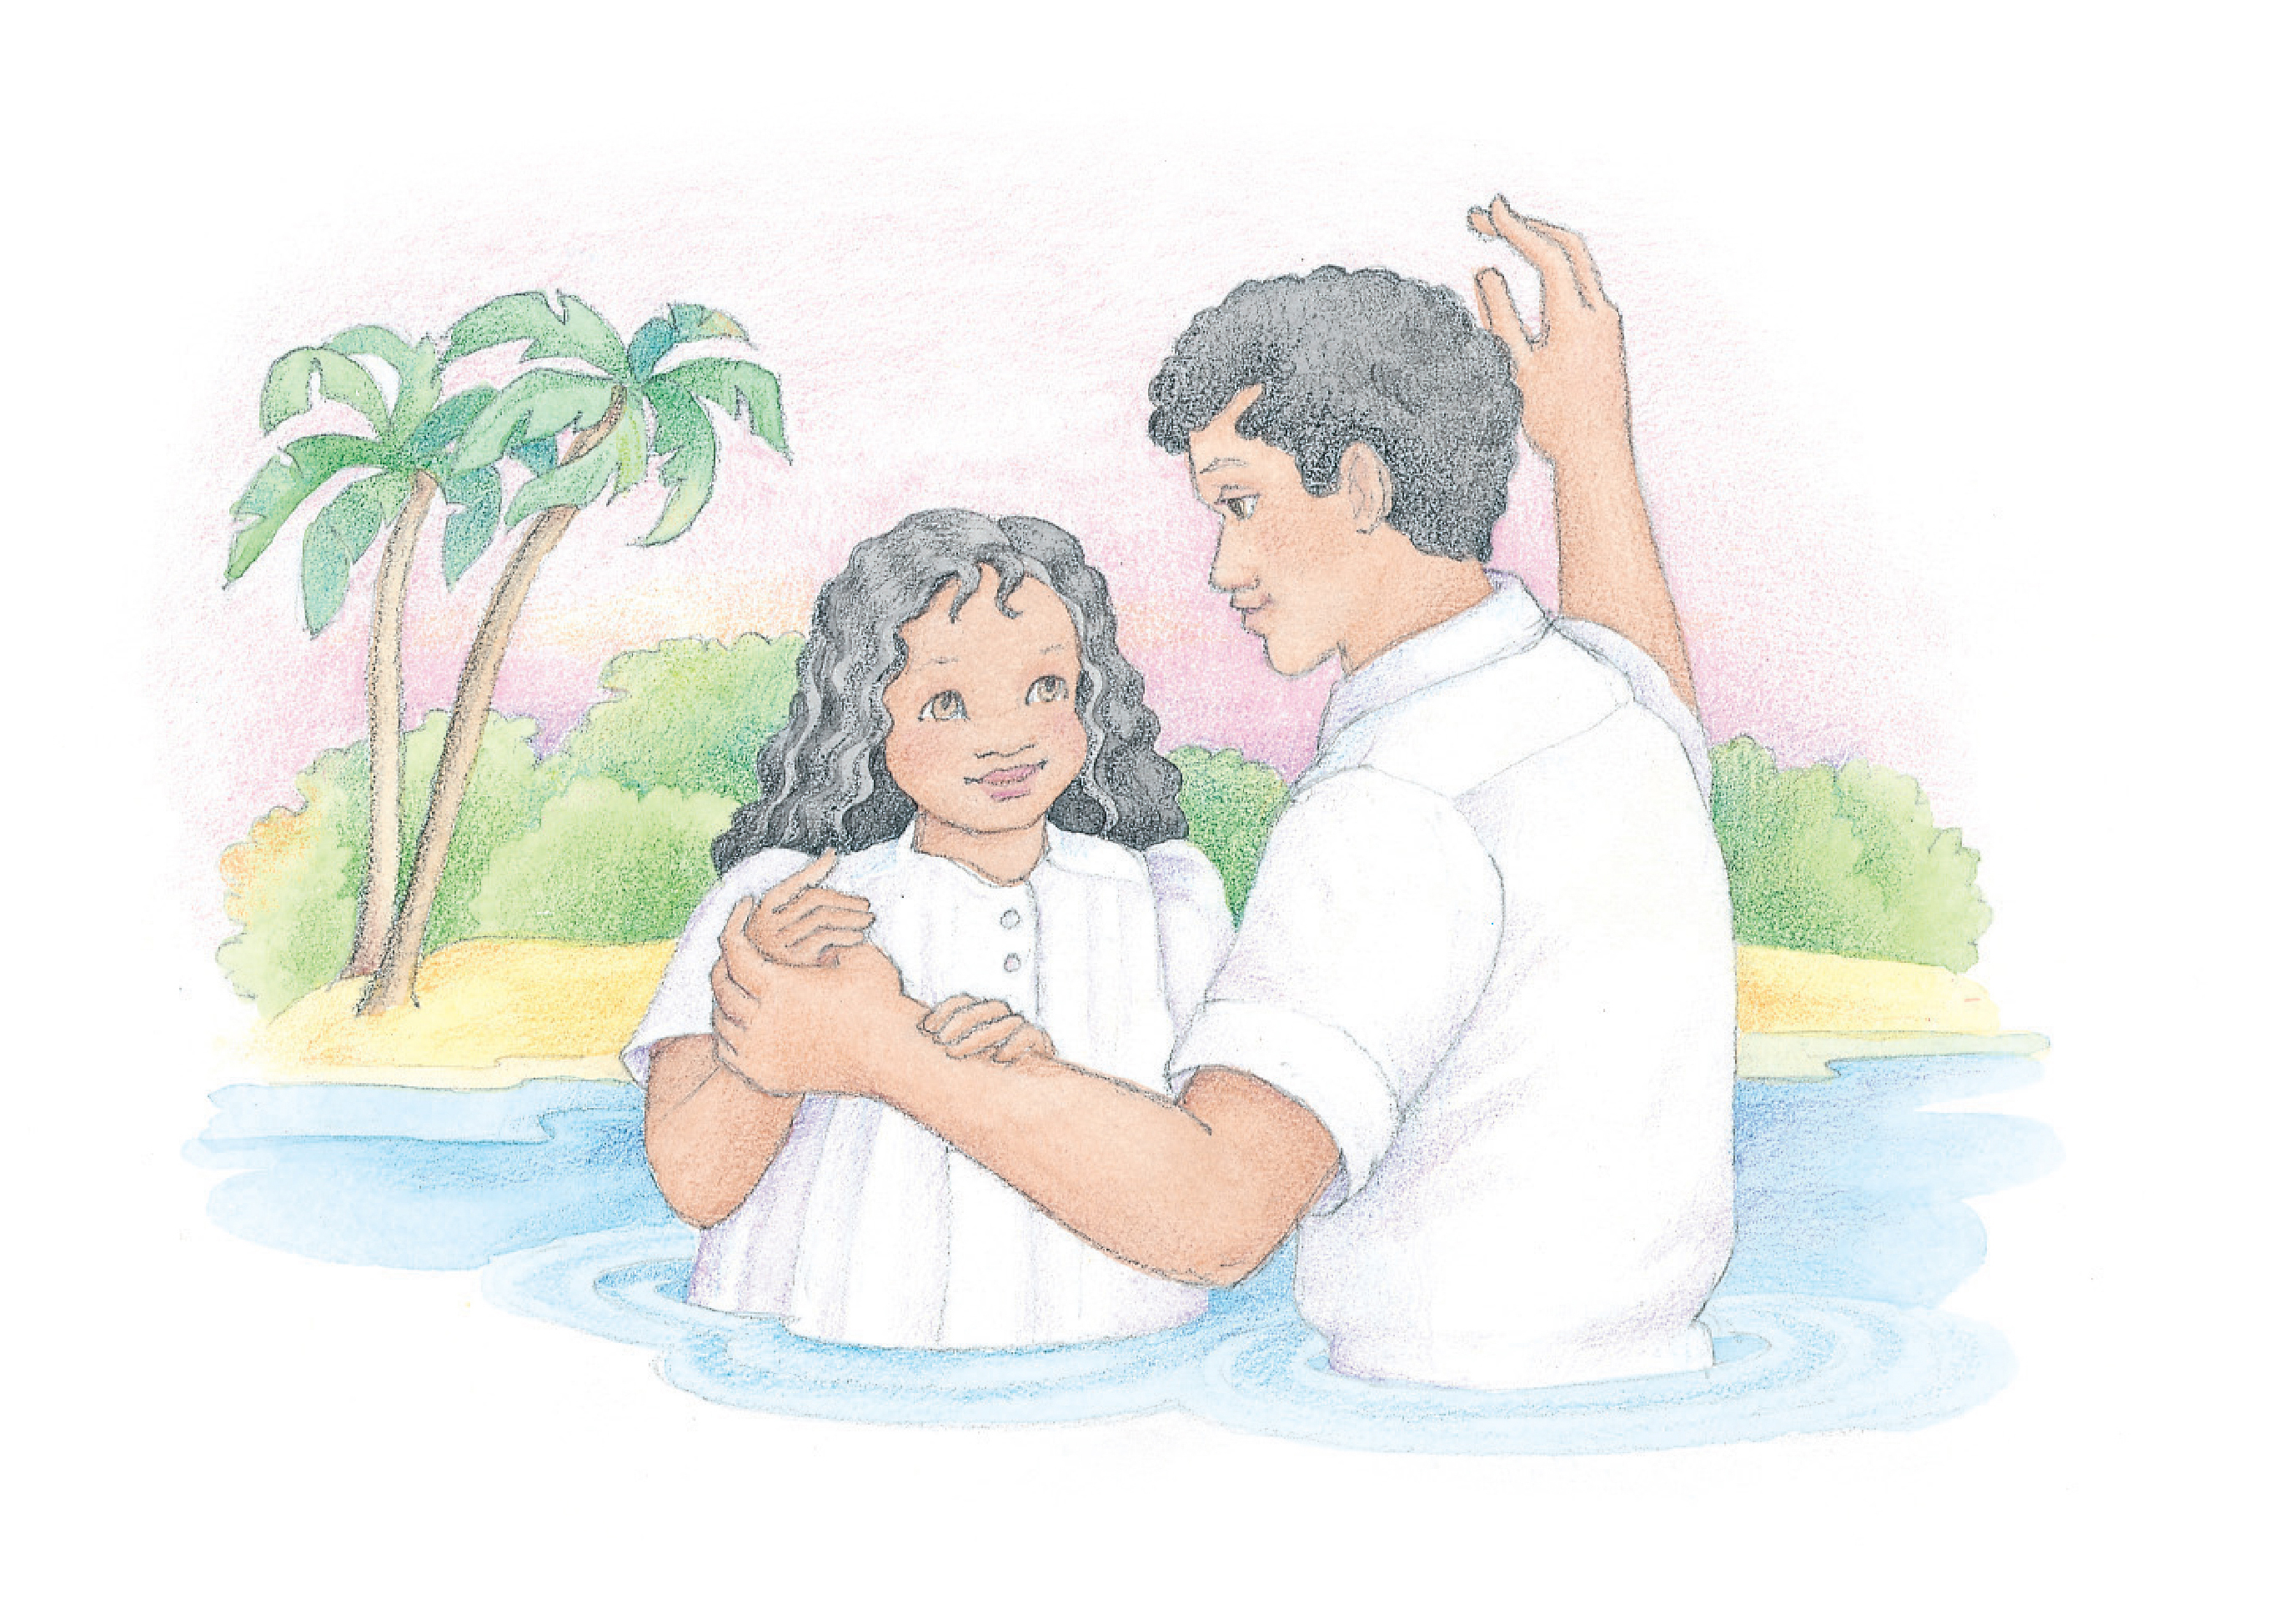 """A girl being baptized by her father. From the Children's Songbook, page 101, """"Baptism""""; watercolor illustration by Phyllis Luch."""